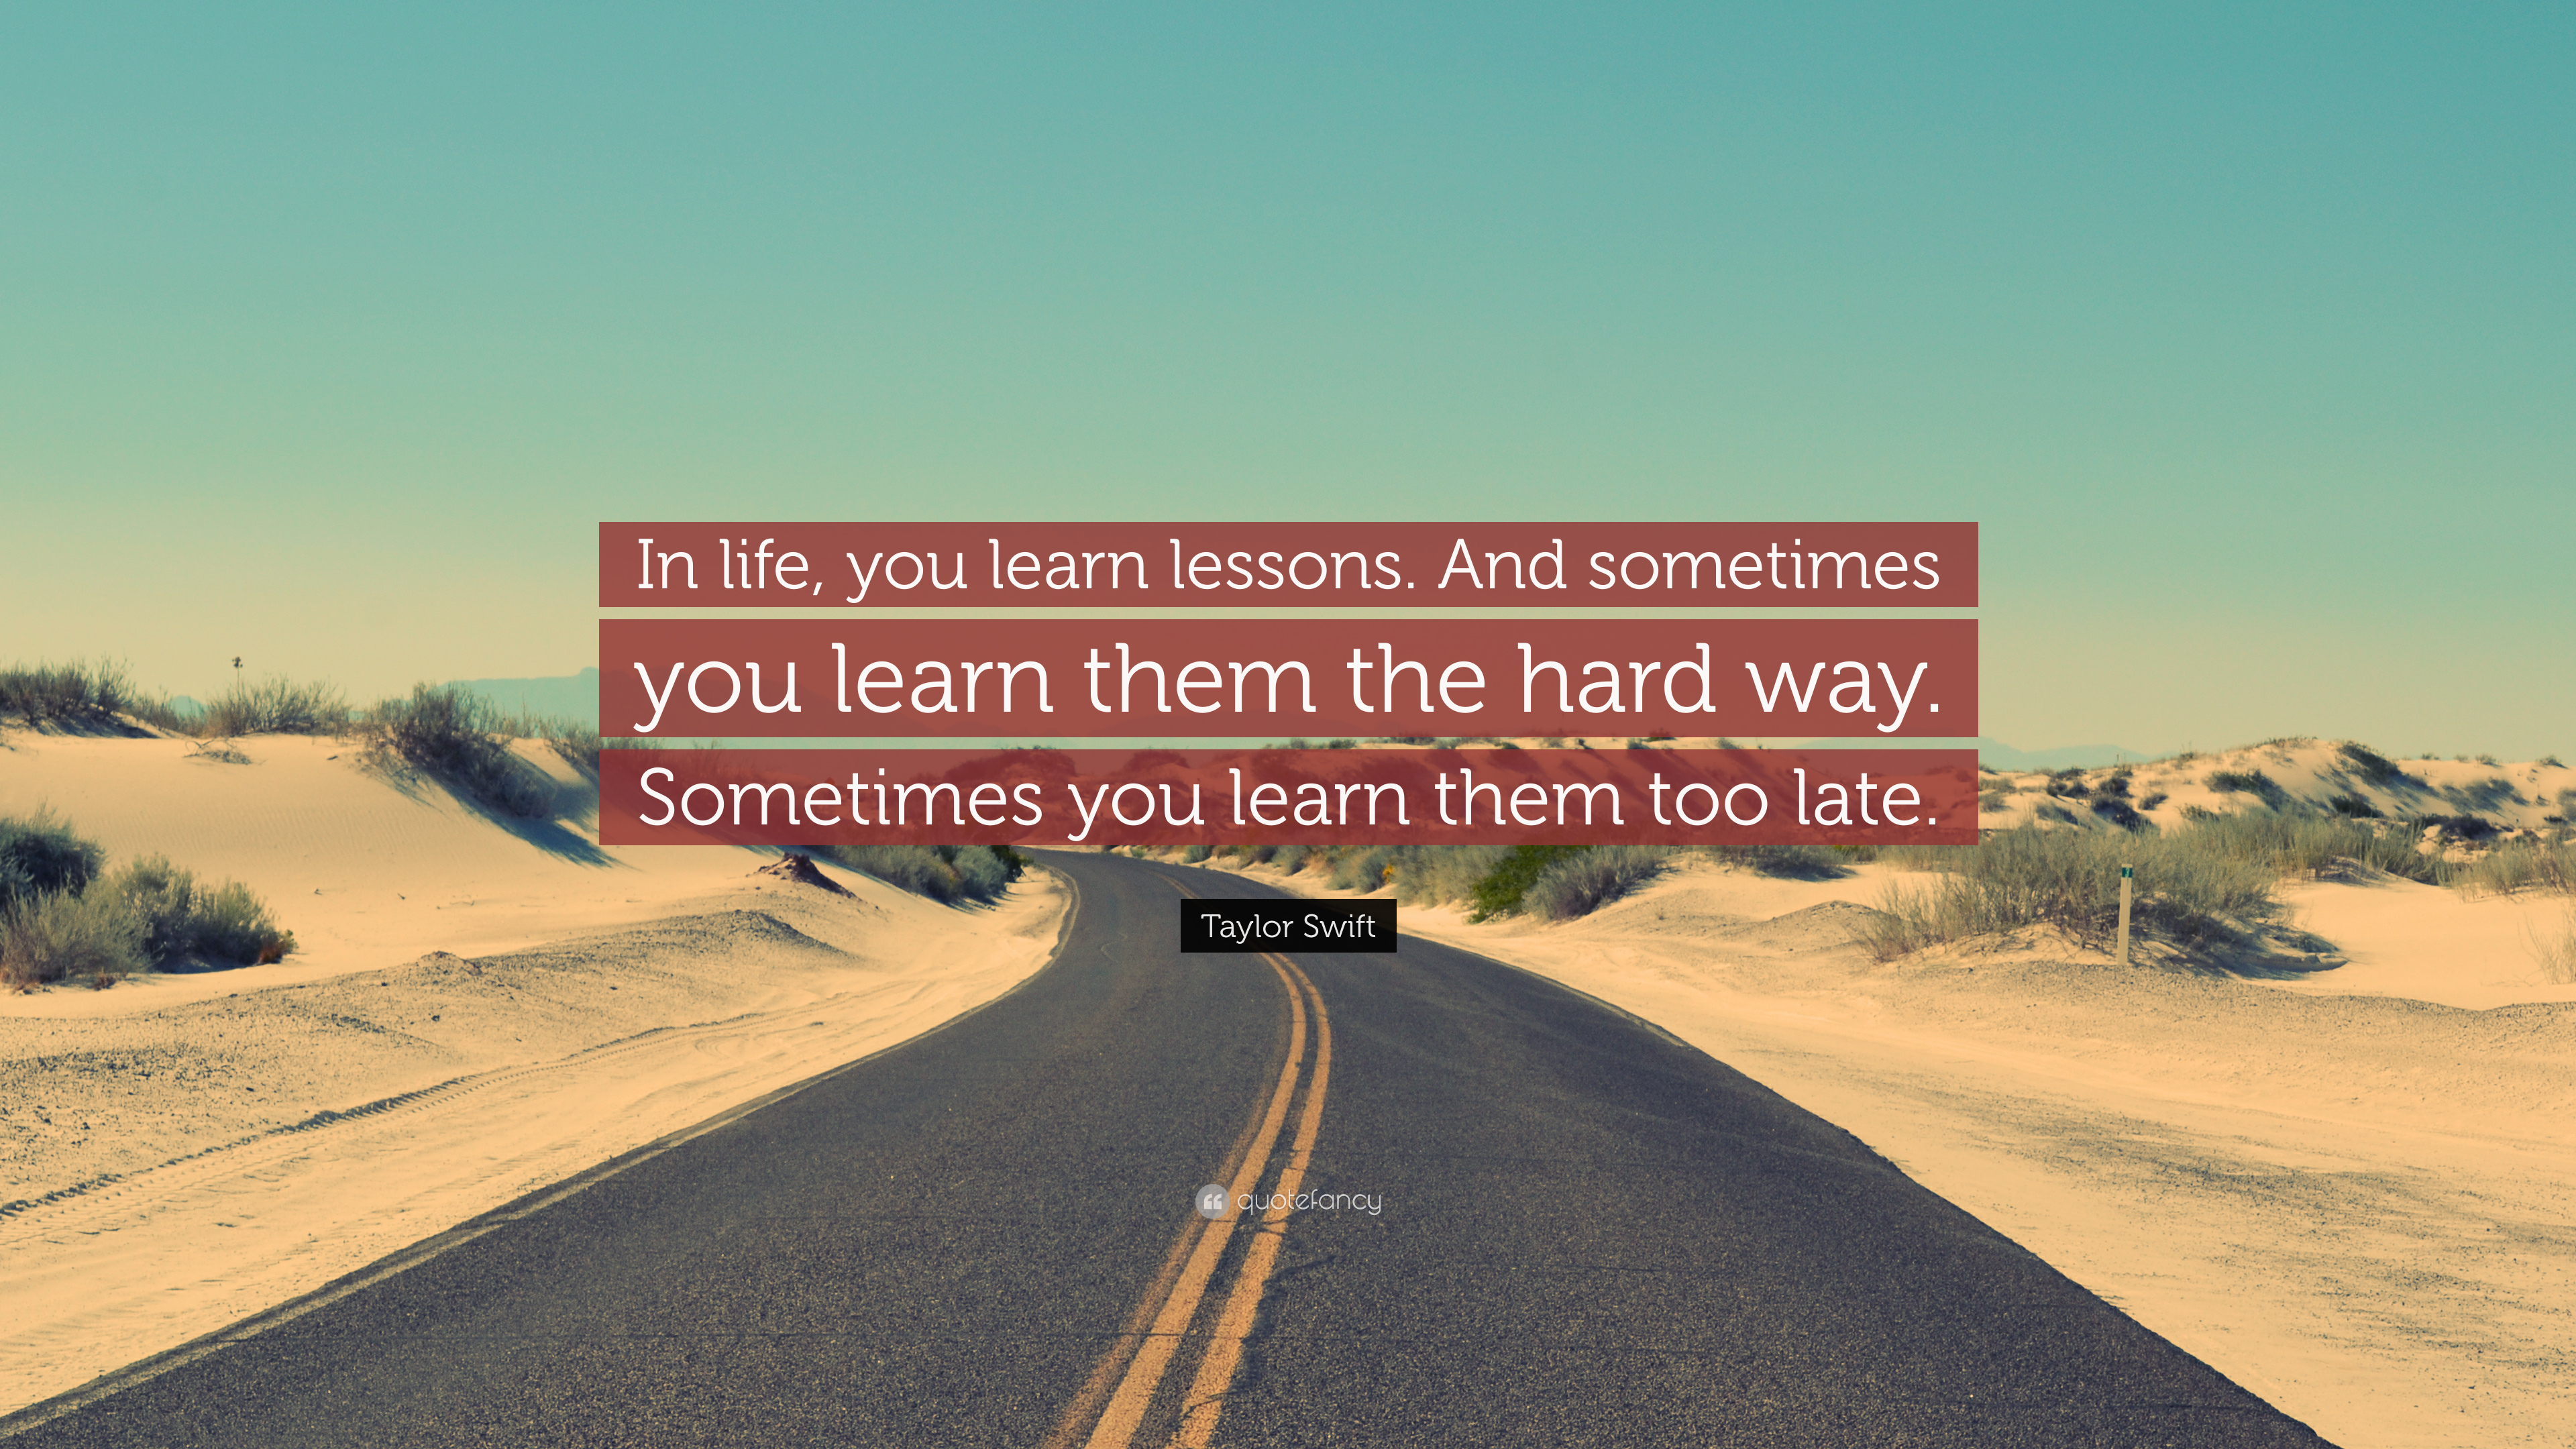 Taylor Swift Quote In Life You Learn Lessons And Sometimes You